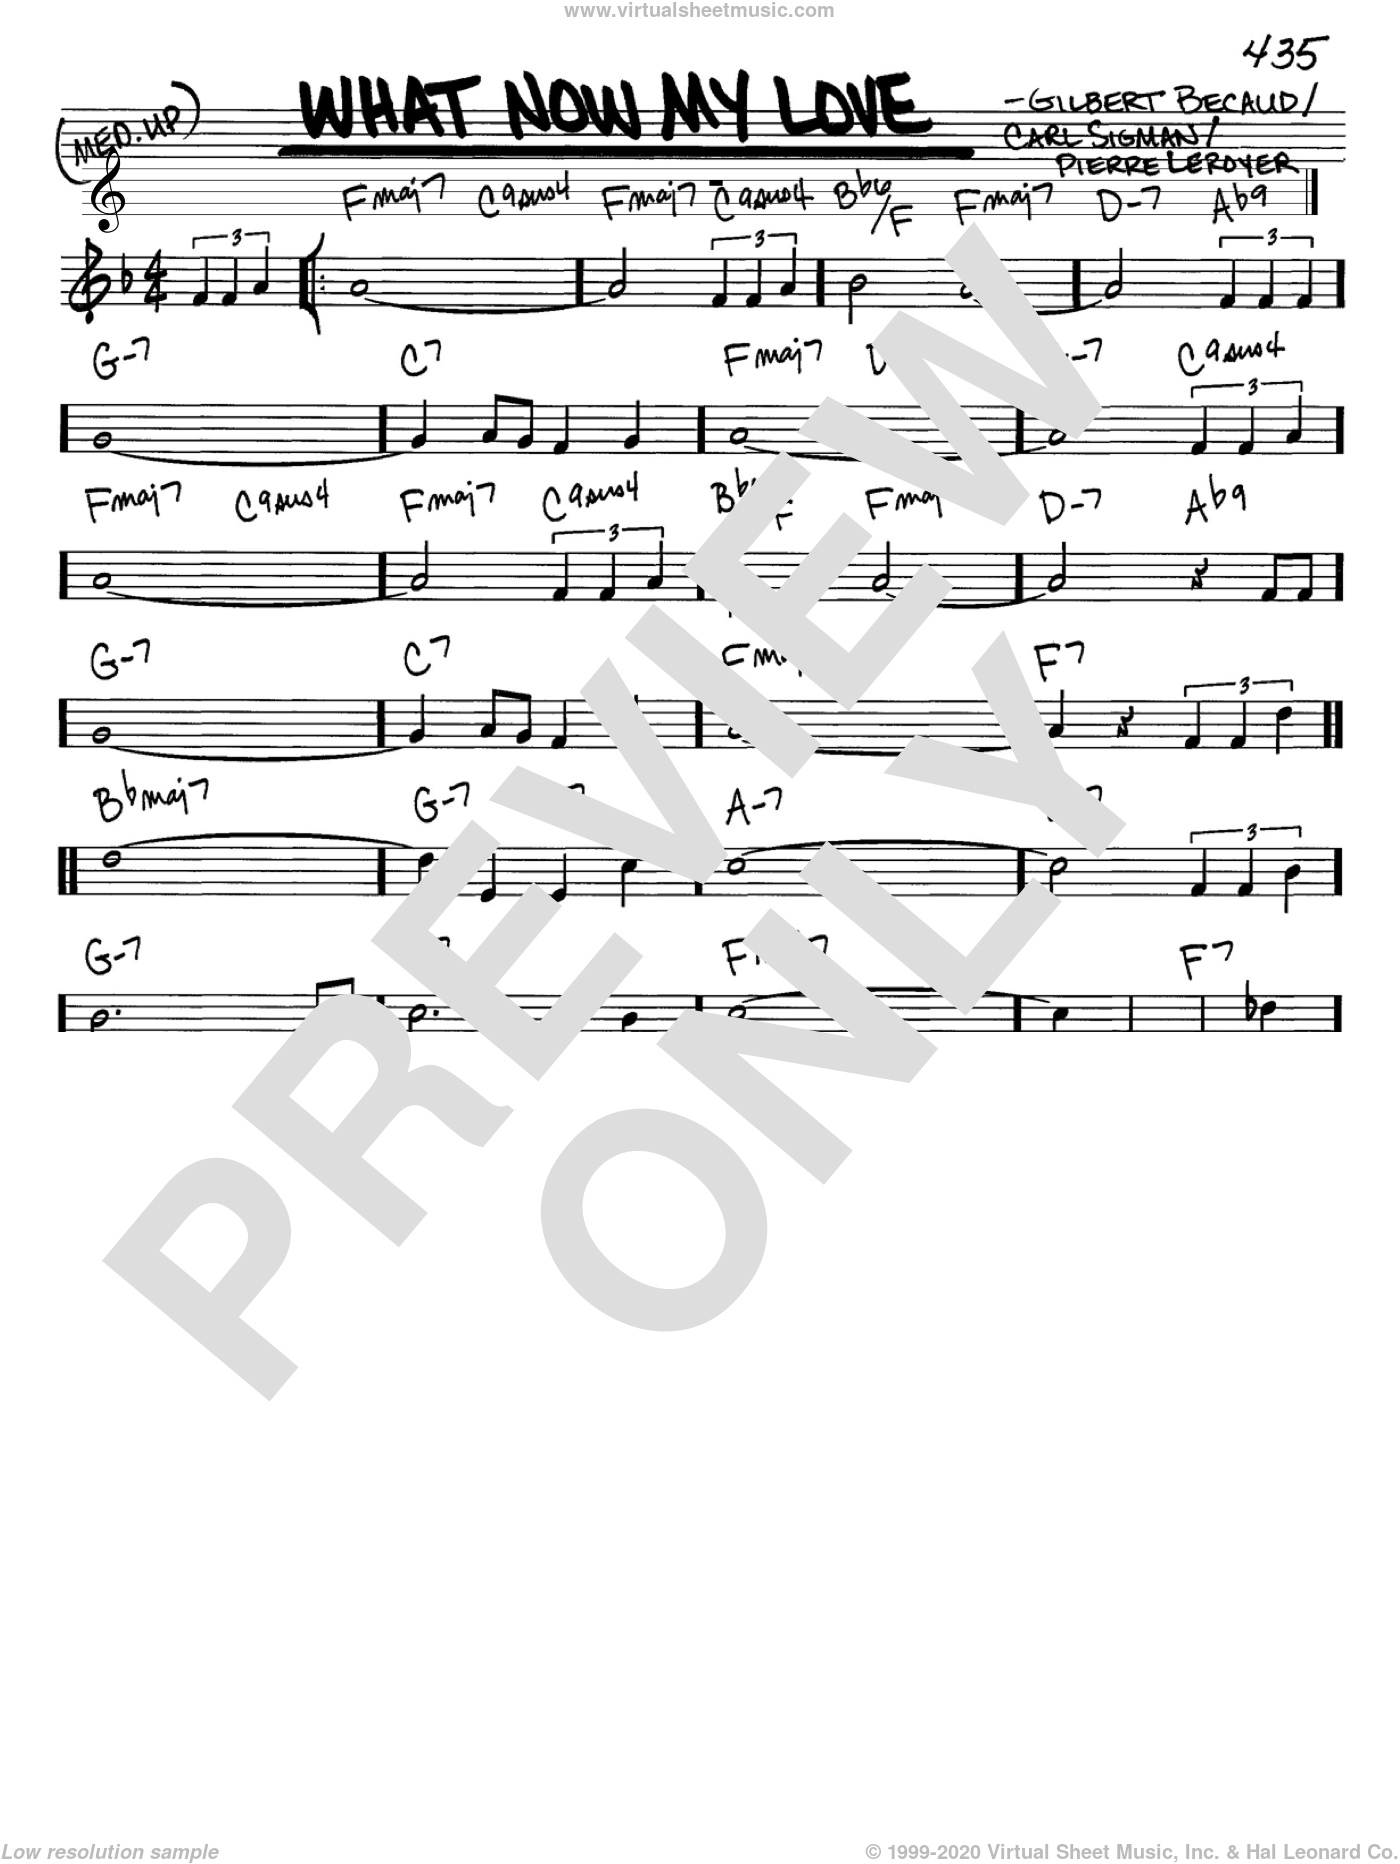 What Now My Love sheet music for voice and other instruments (in C) by Gilbert Becaud, Elvis Presley, Frank Sinatra, Herb Alpert, Herb Alpert & The Tijuana Brass, Sonny & Cher, Carl Sigman, Francois Becaud and Pierre Delanoe, intermediate skill level